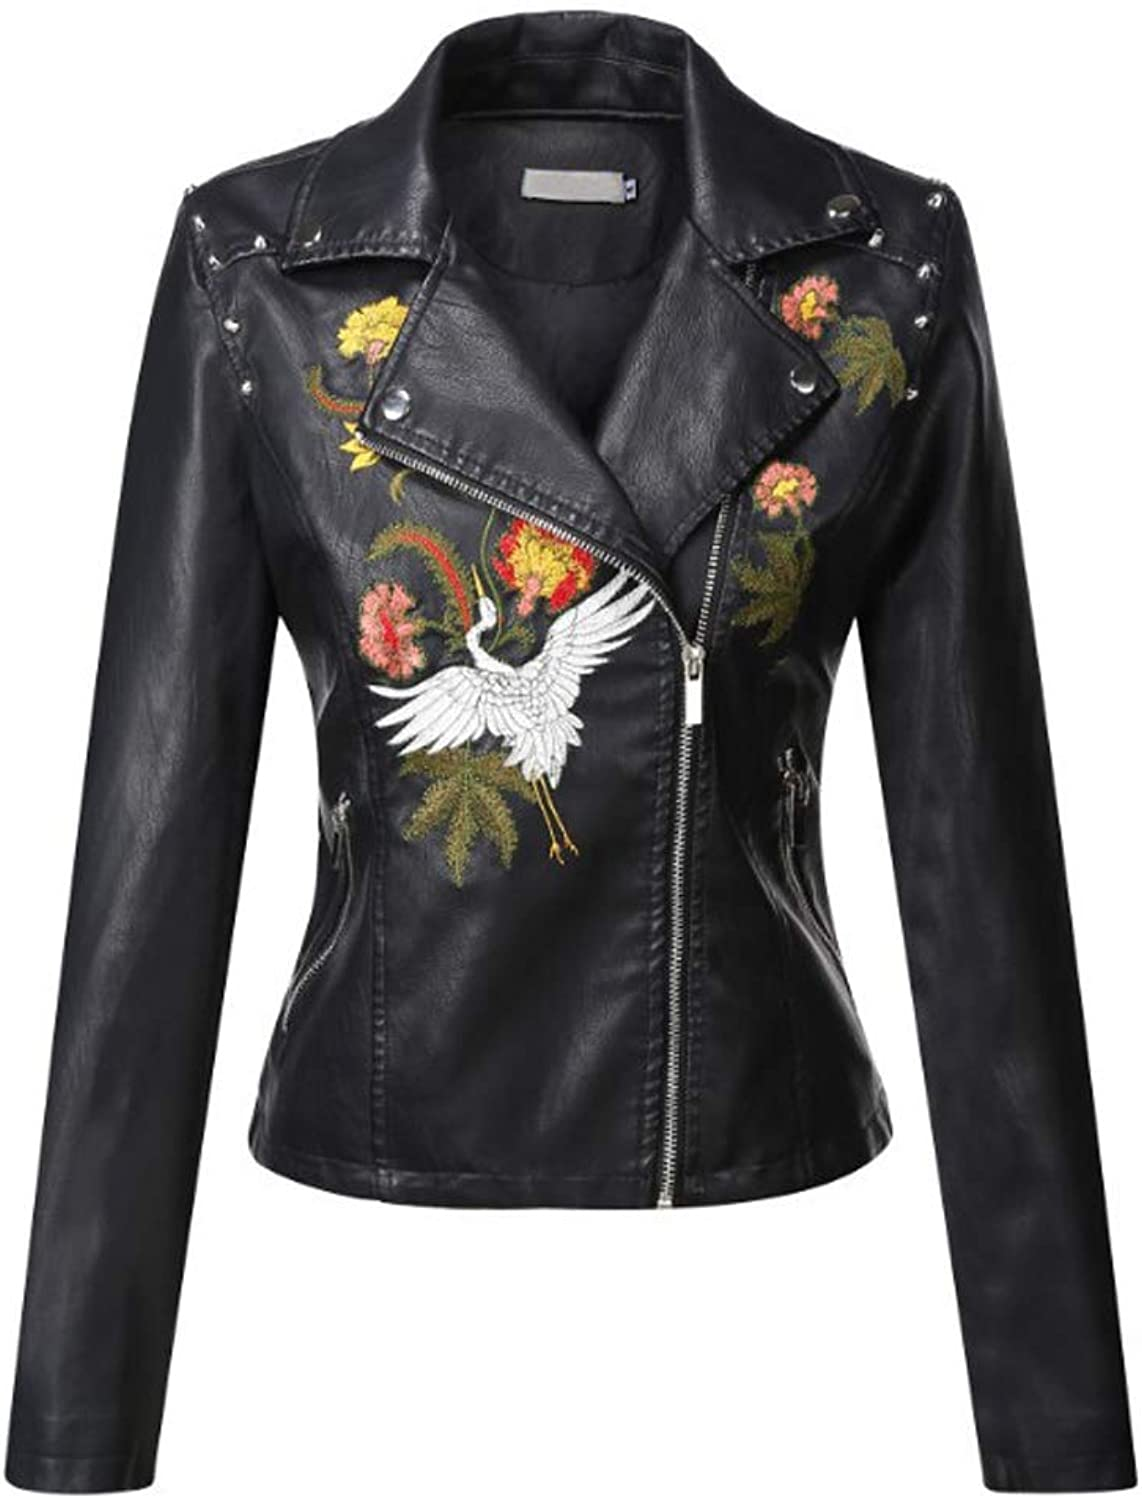 Chowsir Women Slim PU Leather Floral Embroidered Motor Jacket